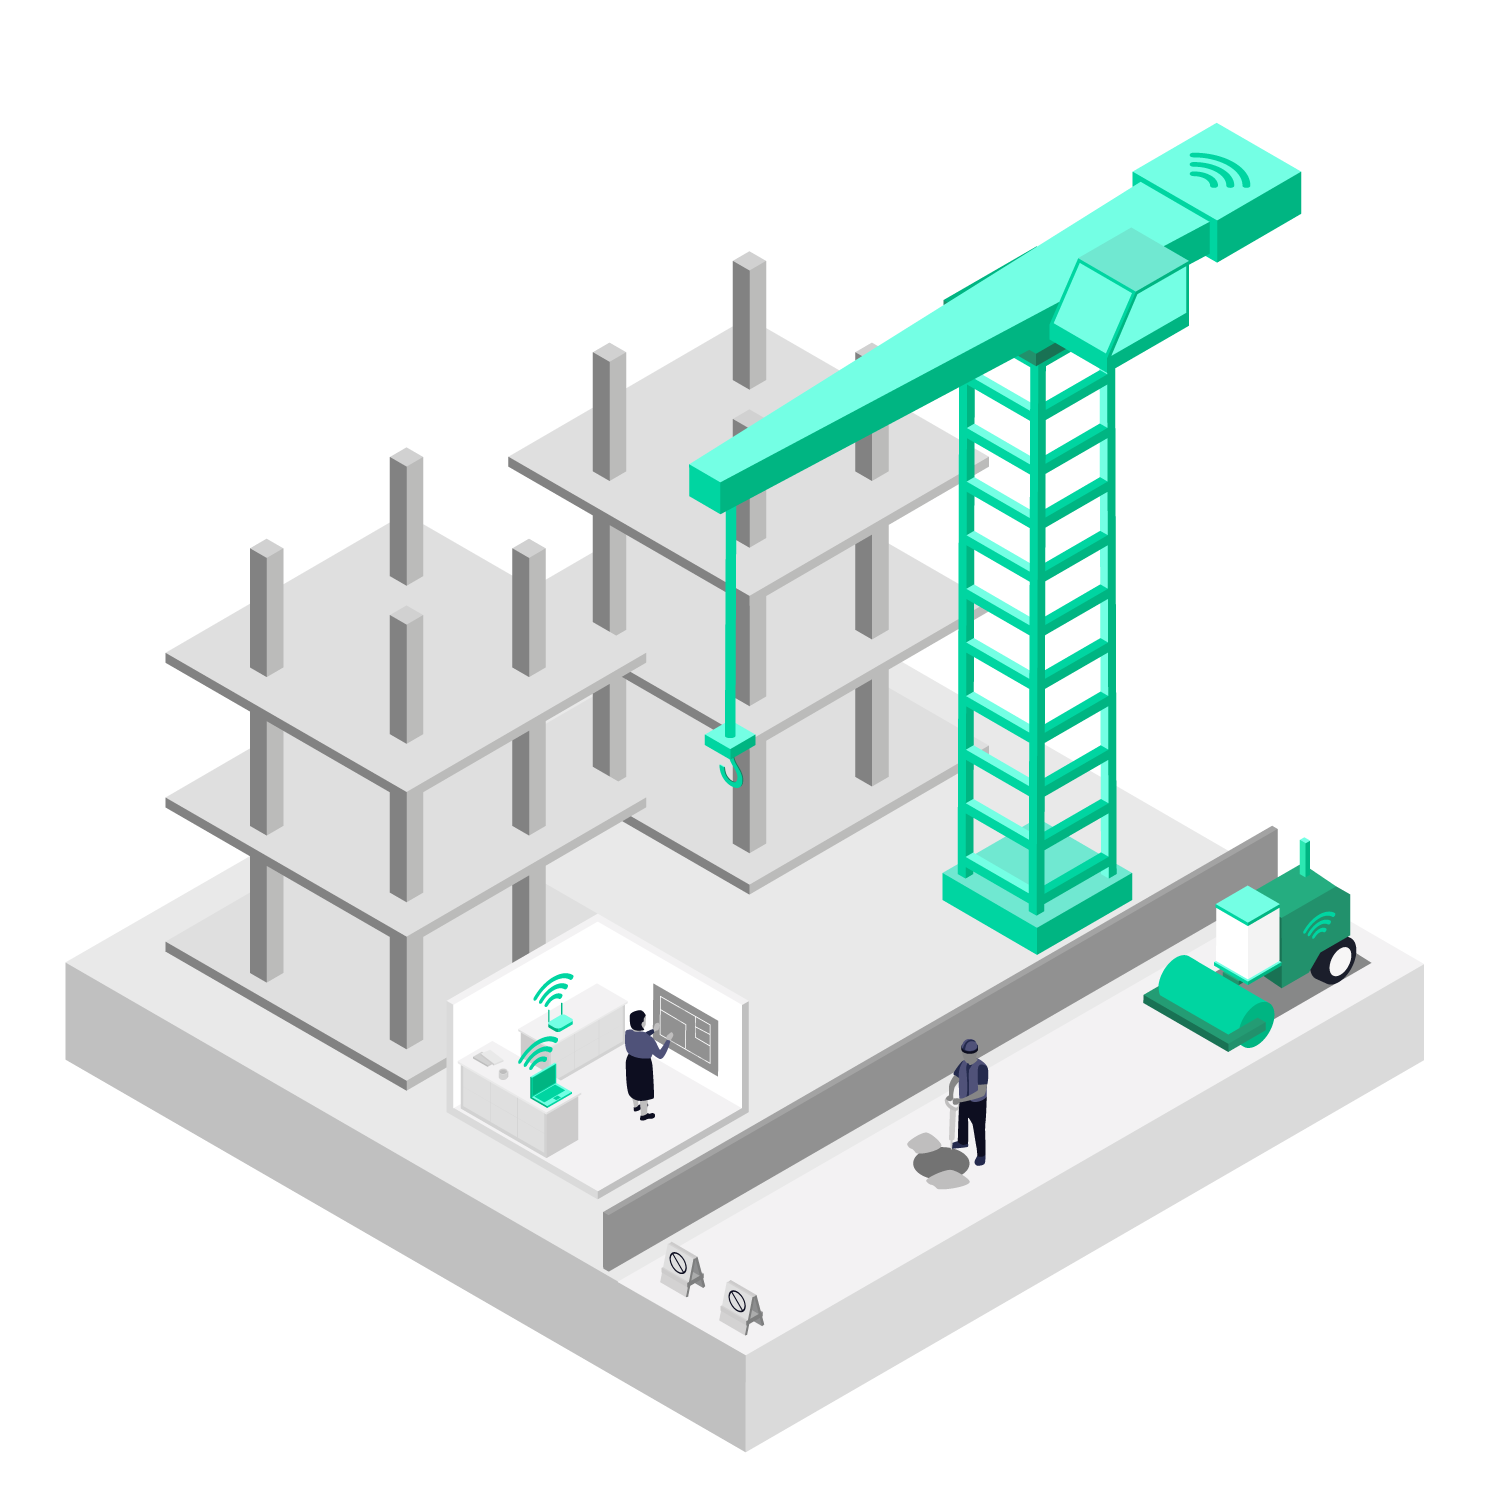 Illustration showing how 5G connectivity could benefit a construction site